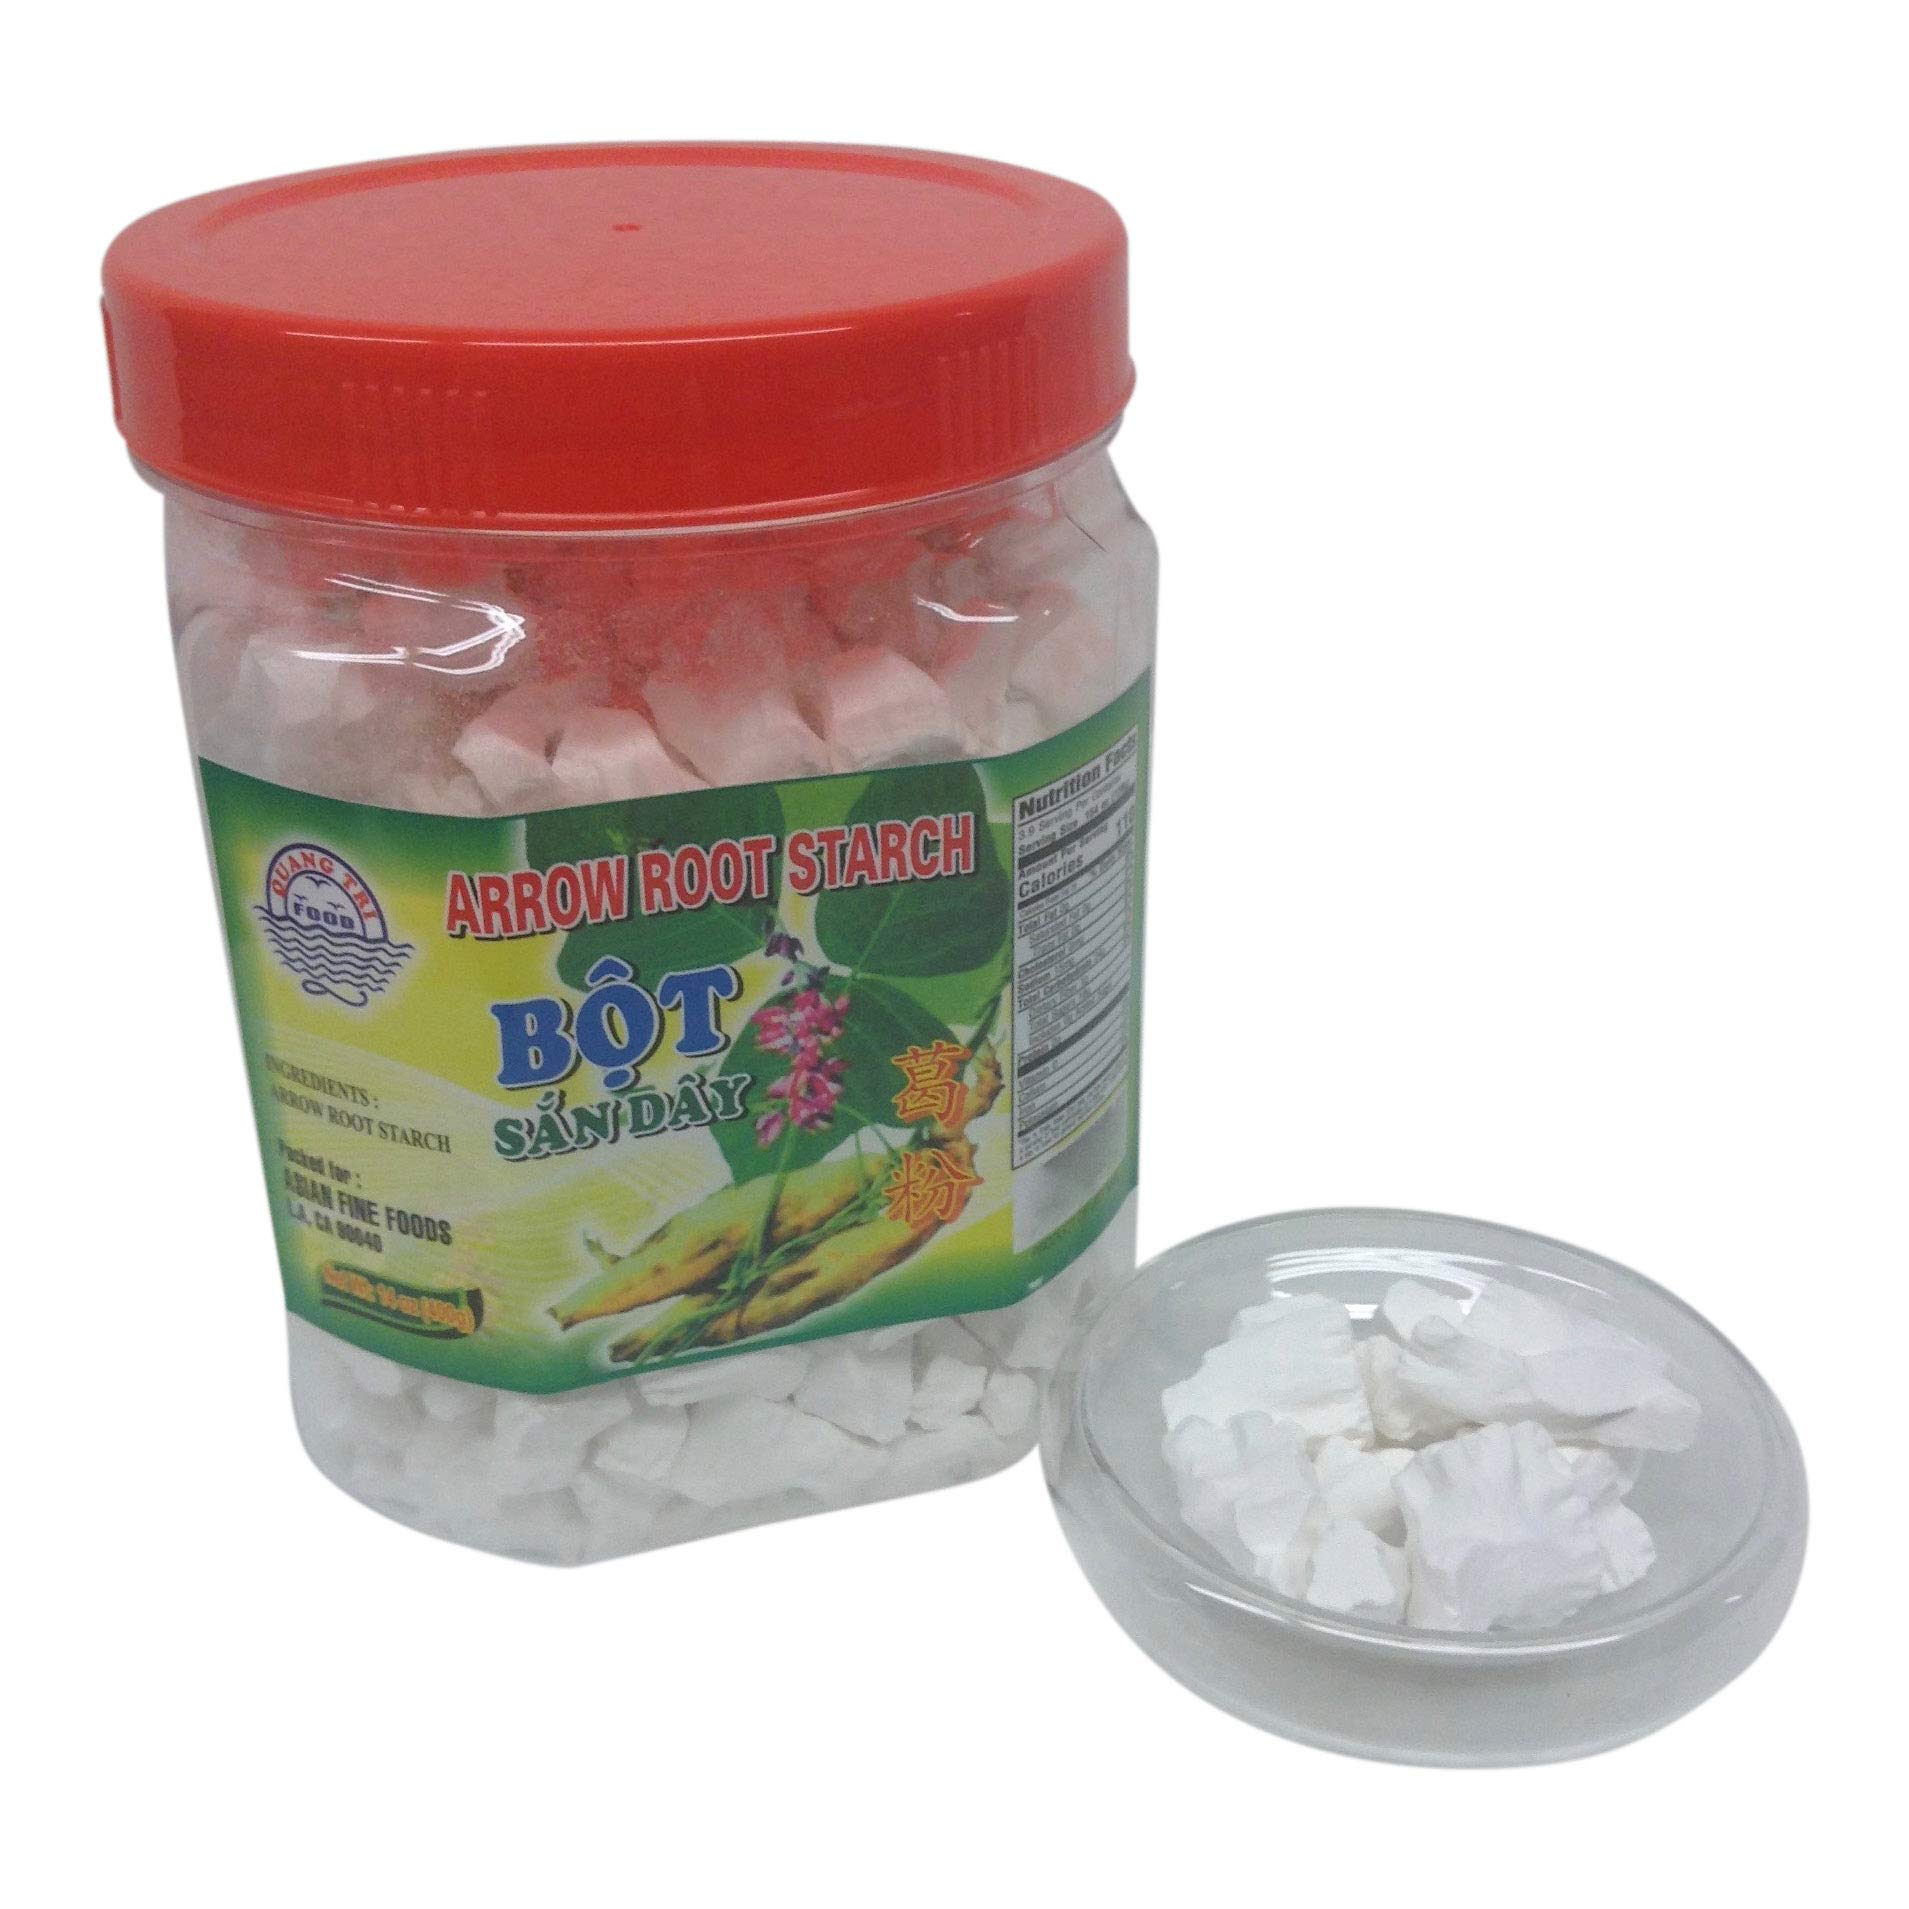 Arrowroot Bot San Day Asian Thickener. Snack Sized Chunks of Crunchy Arrow Root Starch, 14 oz Jar.